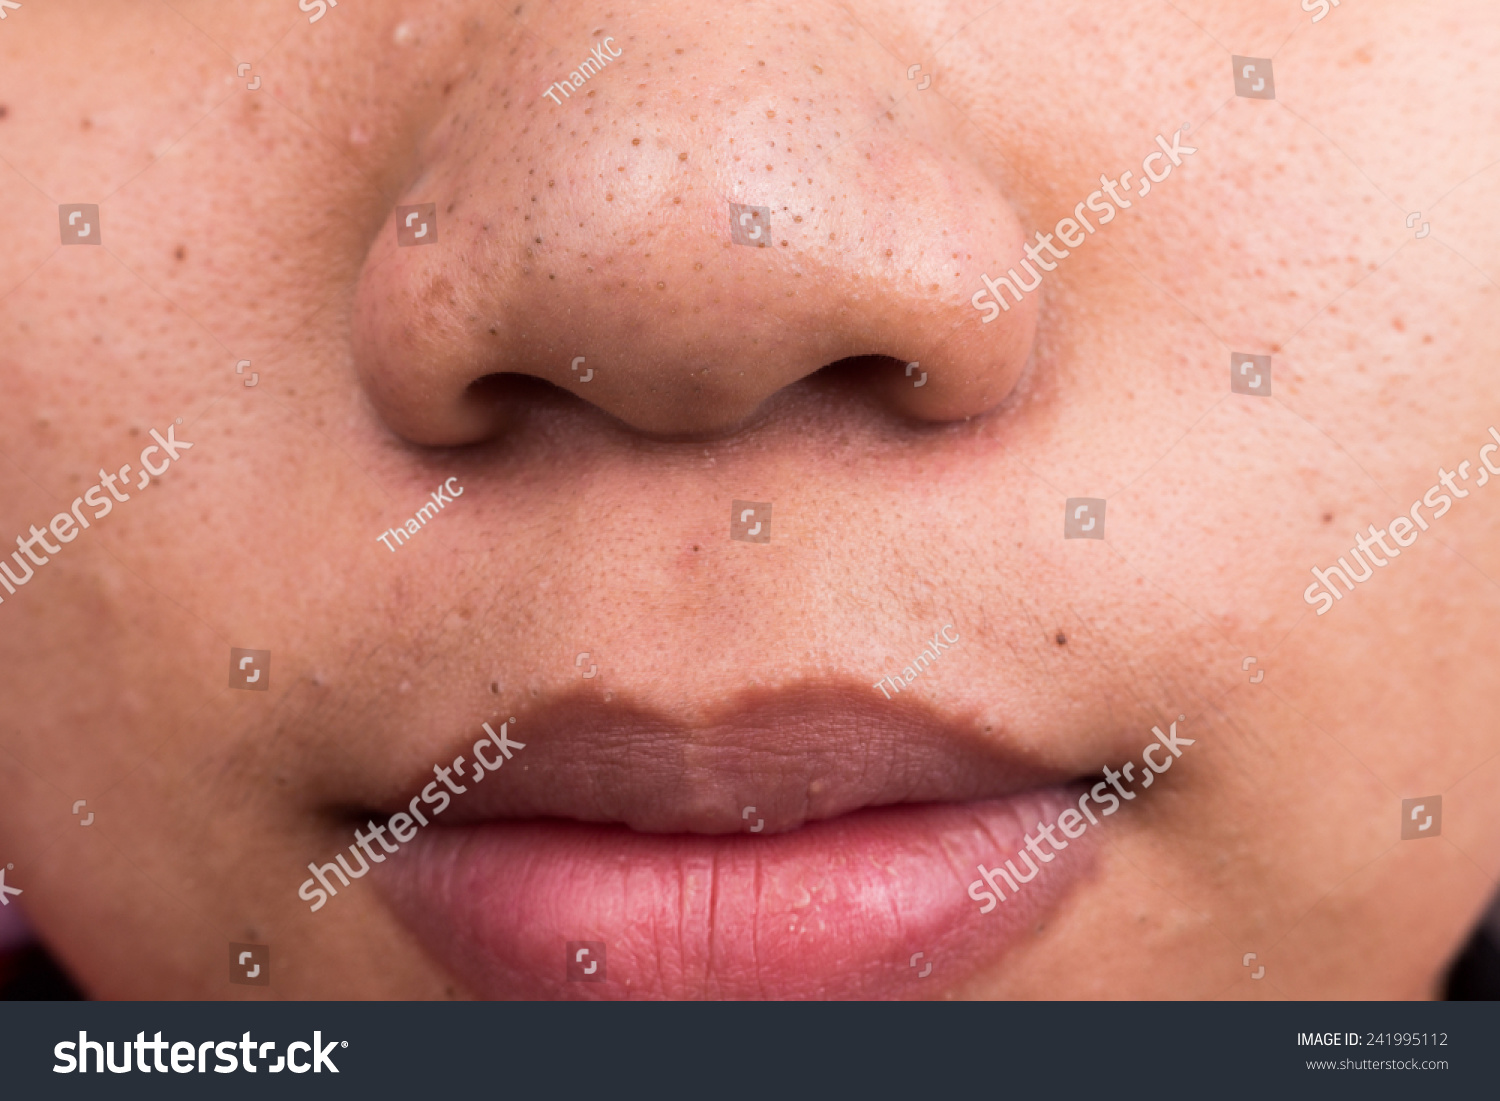 Pimple Blackheads On The Nose And Mouth Area Of An Asian ...